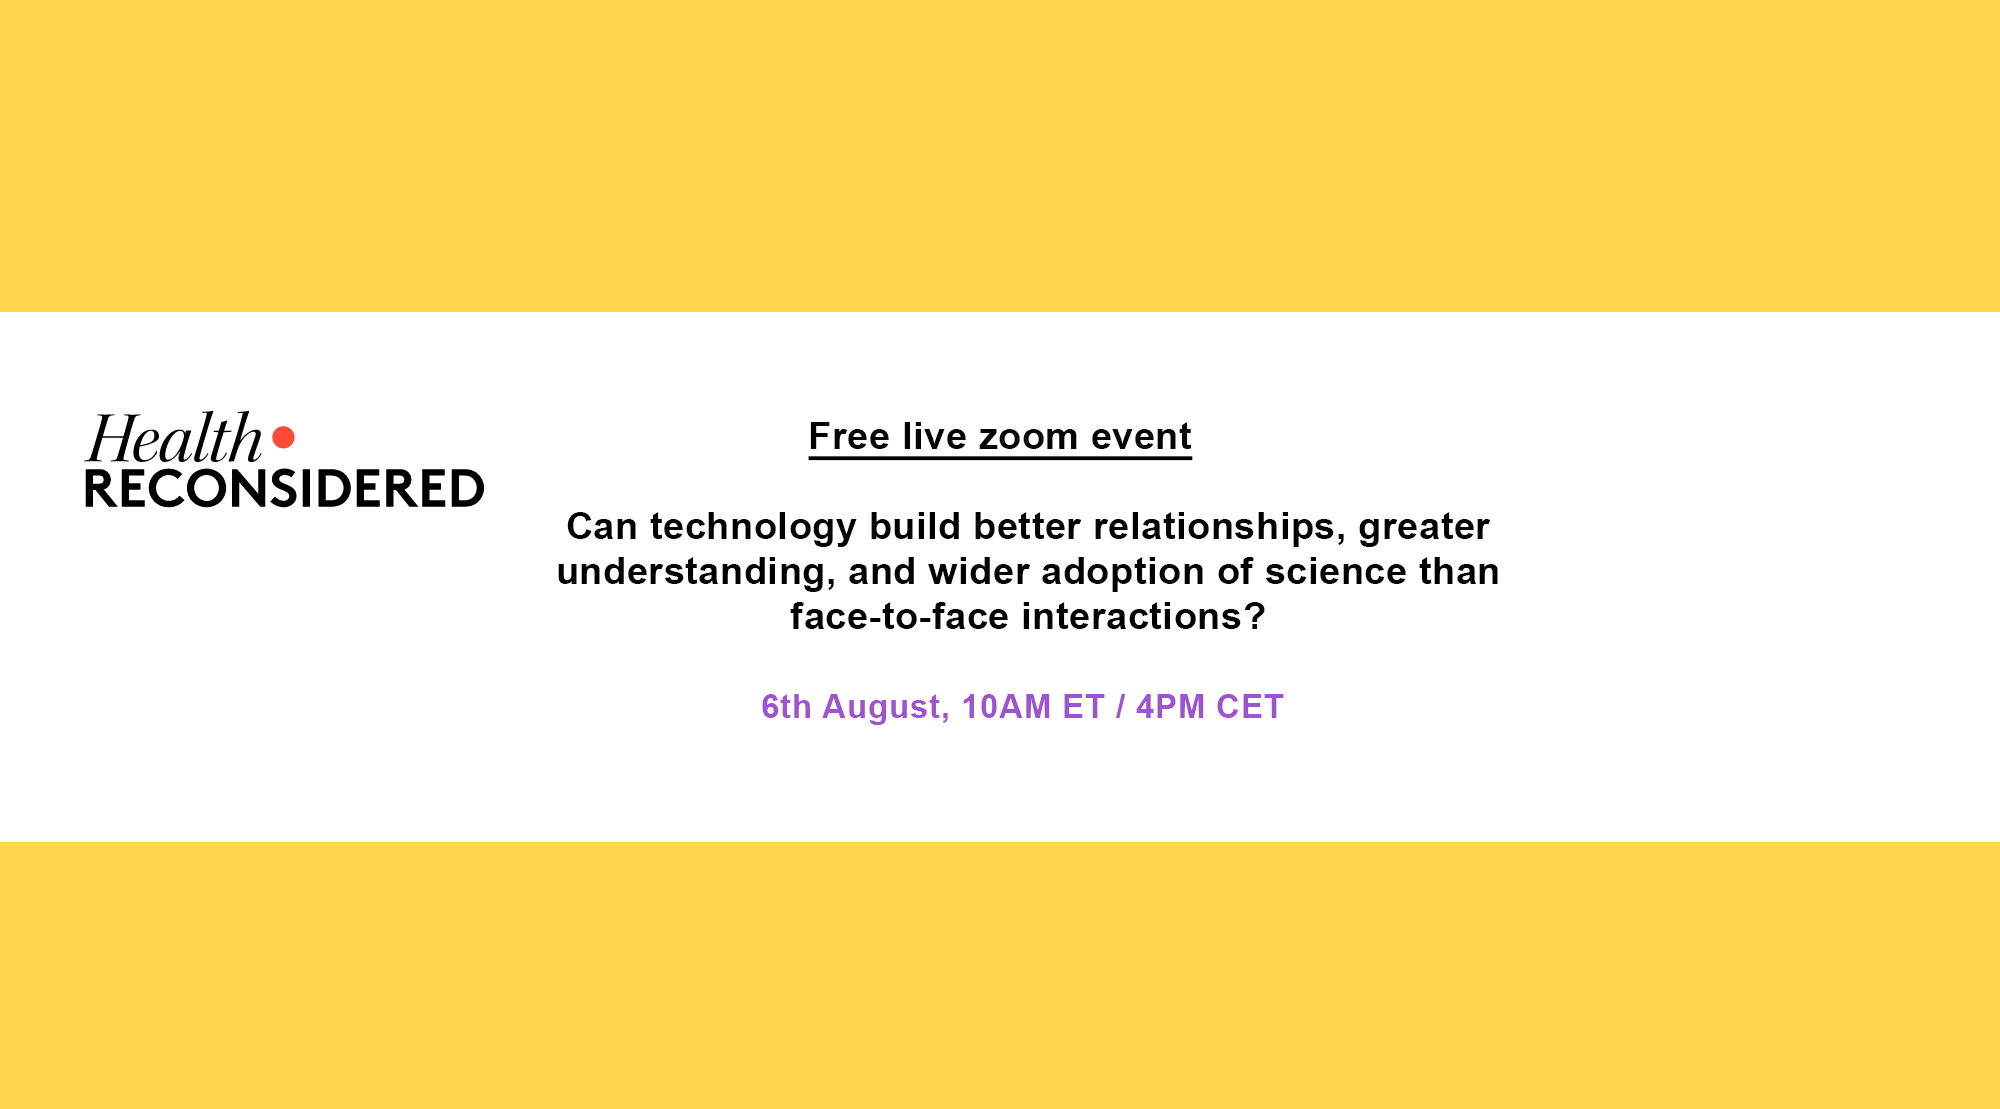 Can technology build better relationships, greater understanding, and wider adoption of science than face-to-face interactions?